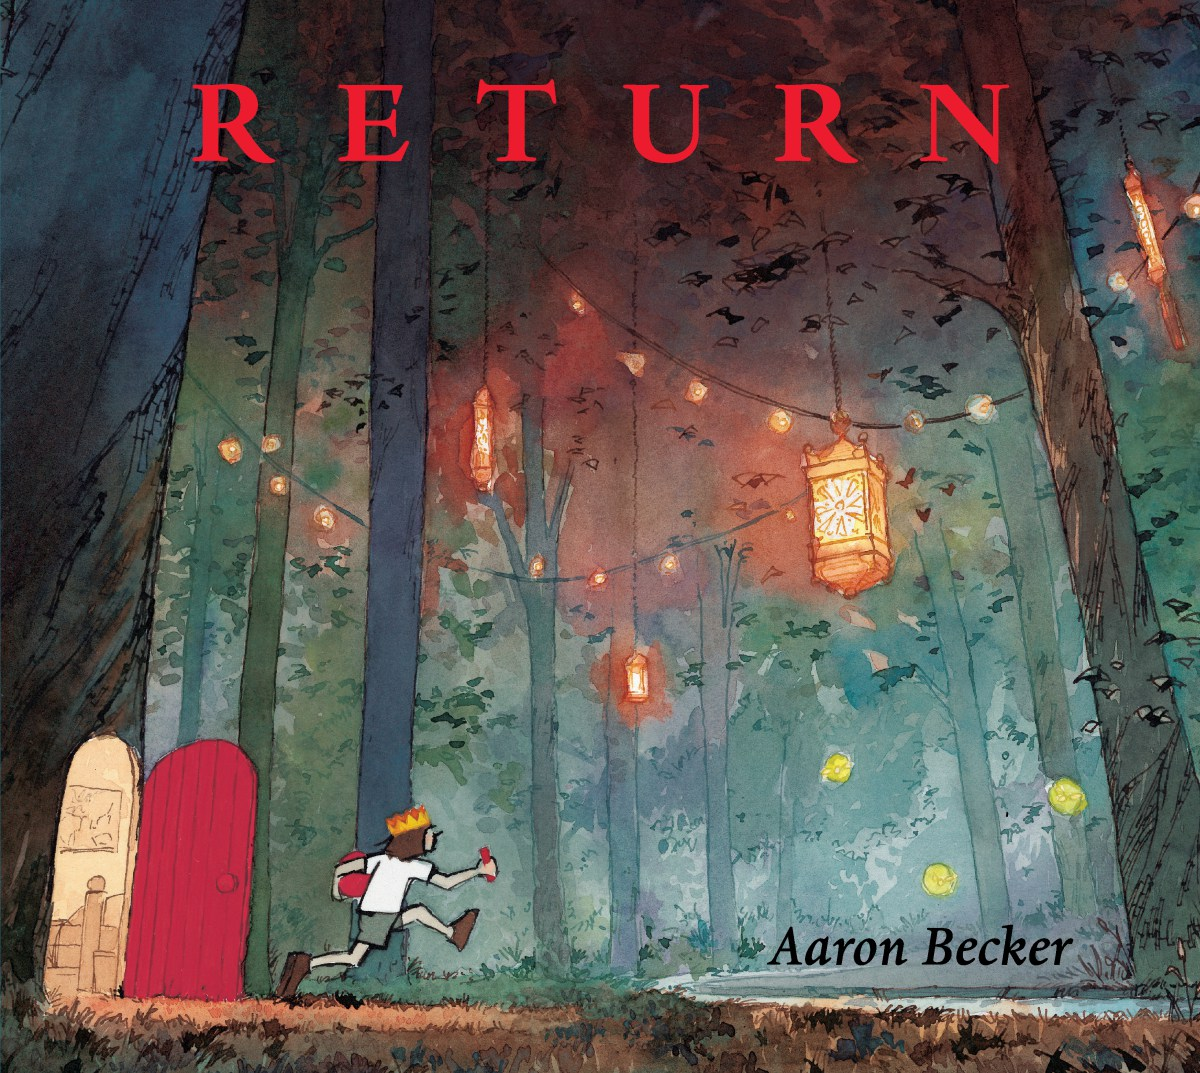 Book Cover Drawing Quest ~ Picture book party cover reveal return by aaron becker